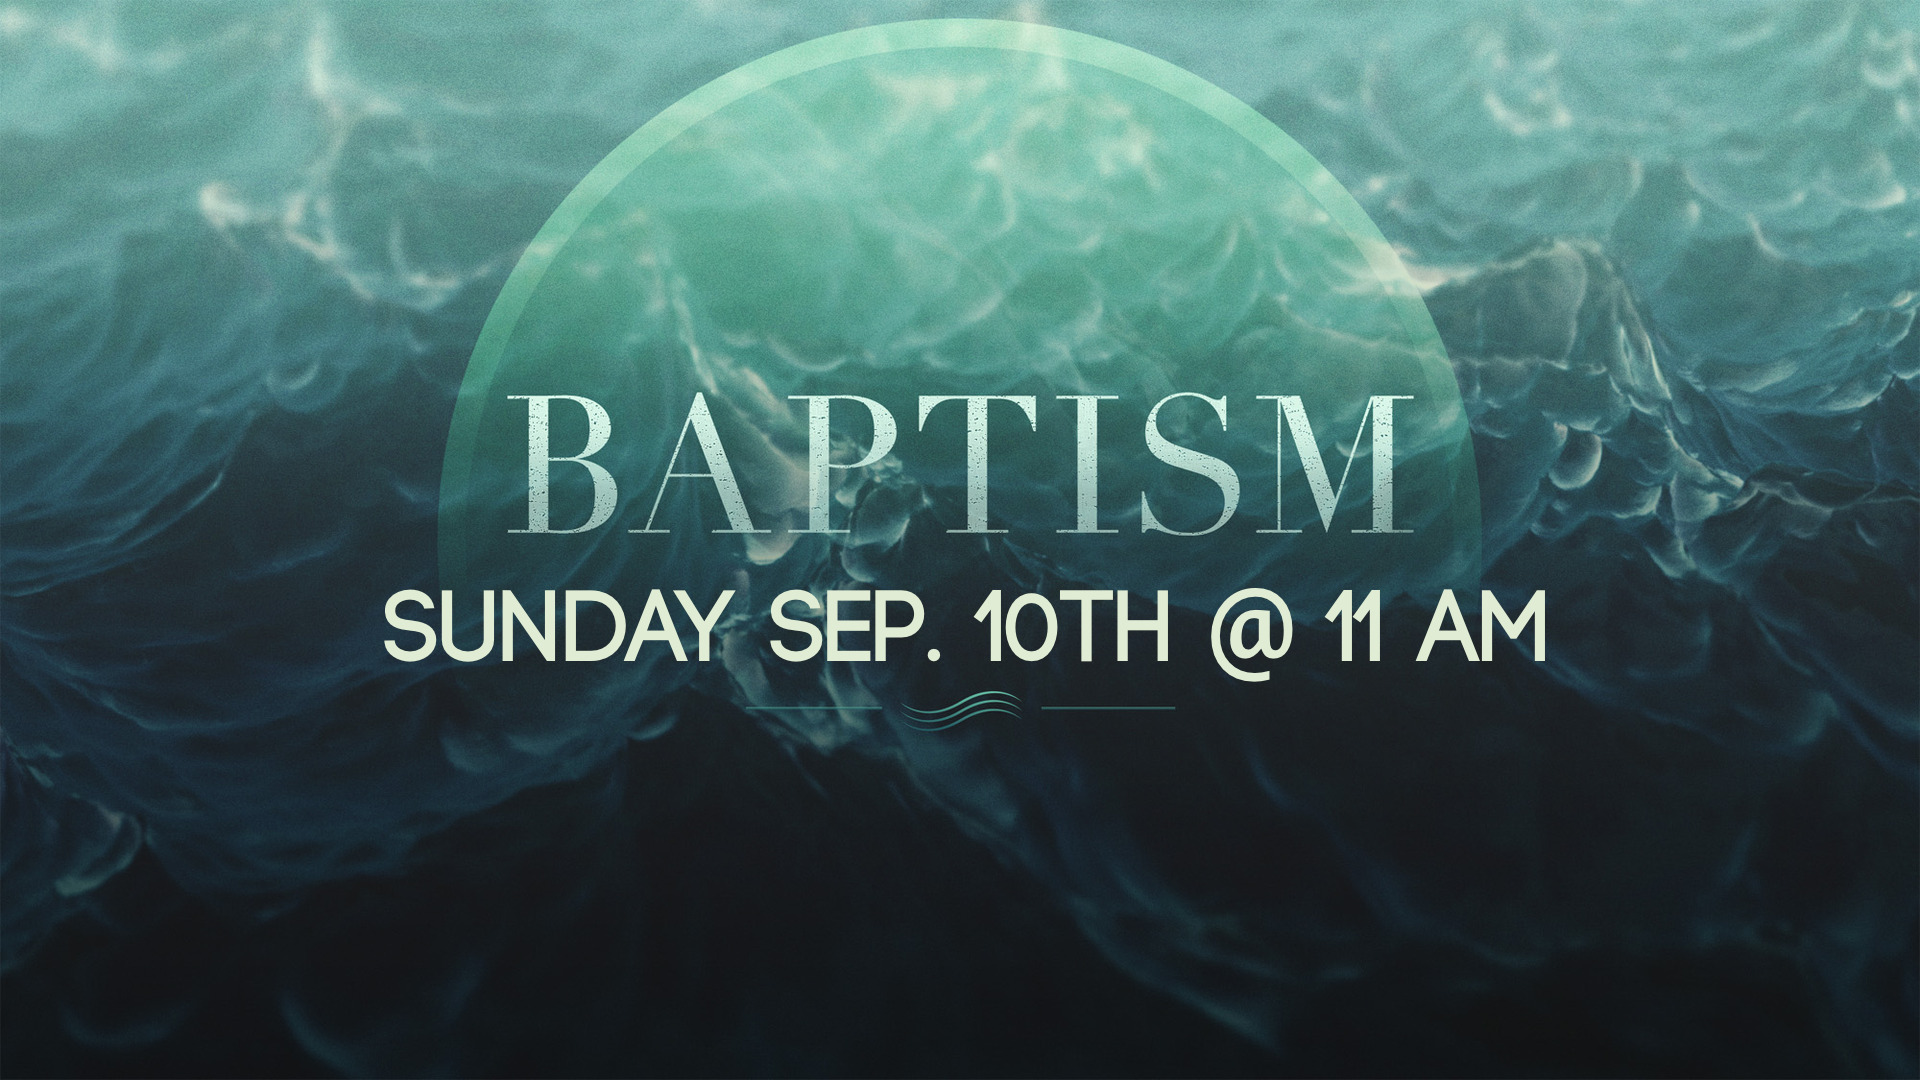 Contact any staff member and let them know you want to take the next step in obedience by being baptized.